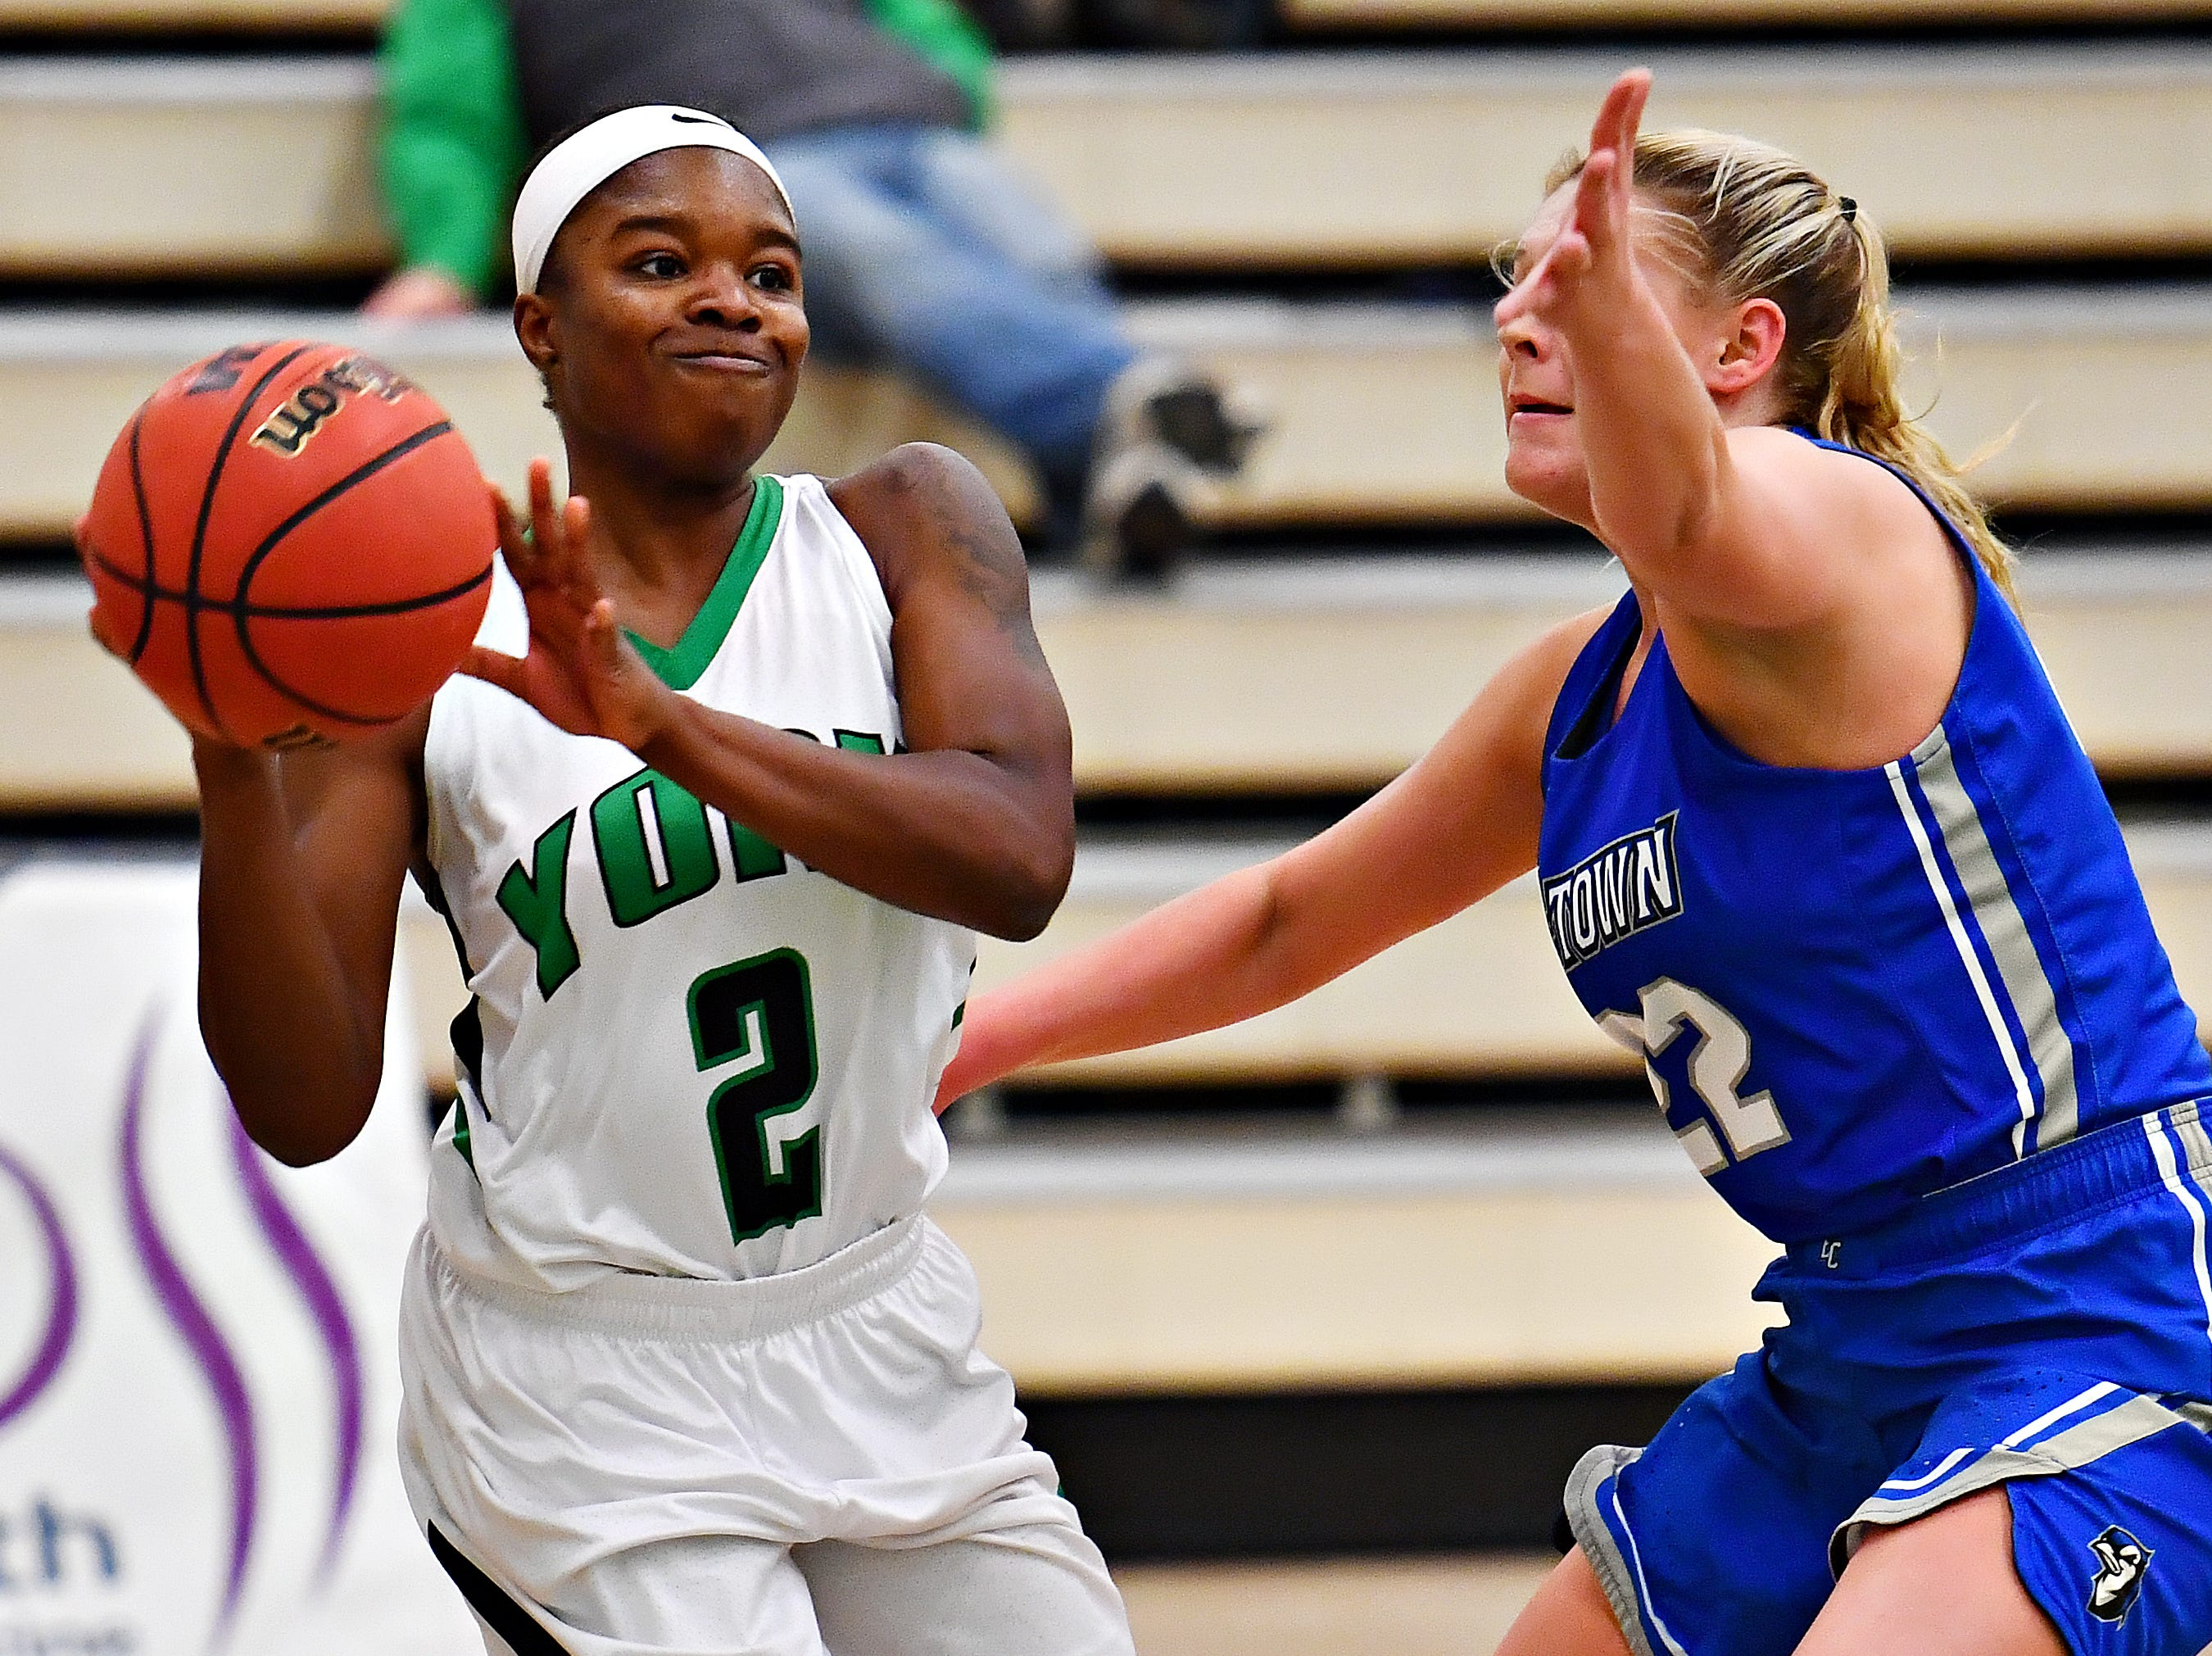 York College's Debria Hendricks, left, looks to get the ball past Elizabethtown's Lydia Lawson during women's basketball action at Grumbacher Sport and Fitness Center in Spring Garden Township, Wednesday, Nov. 28, 2018. Dawn J. Sagert photo